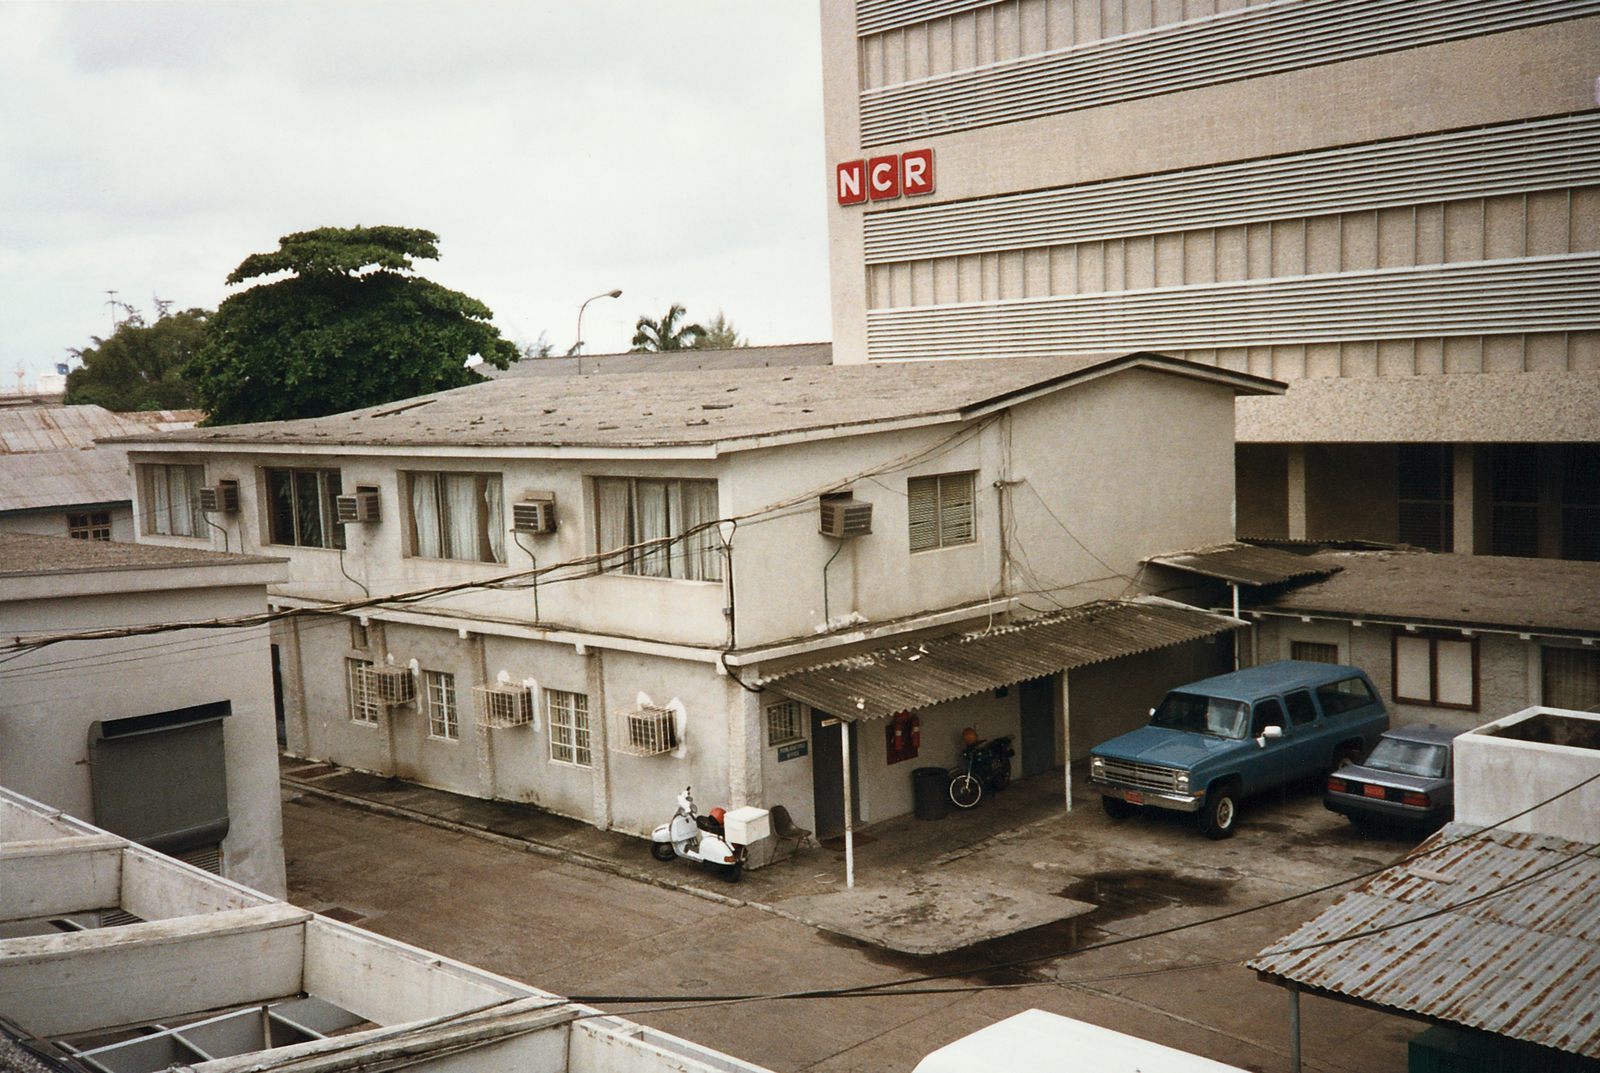 Lagos - Annex Office Building - 1989